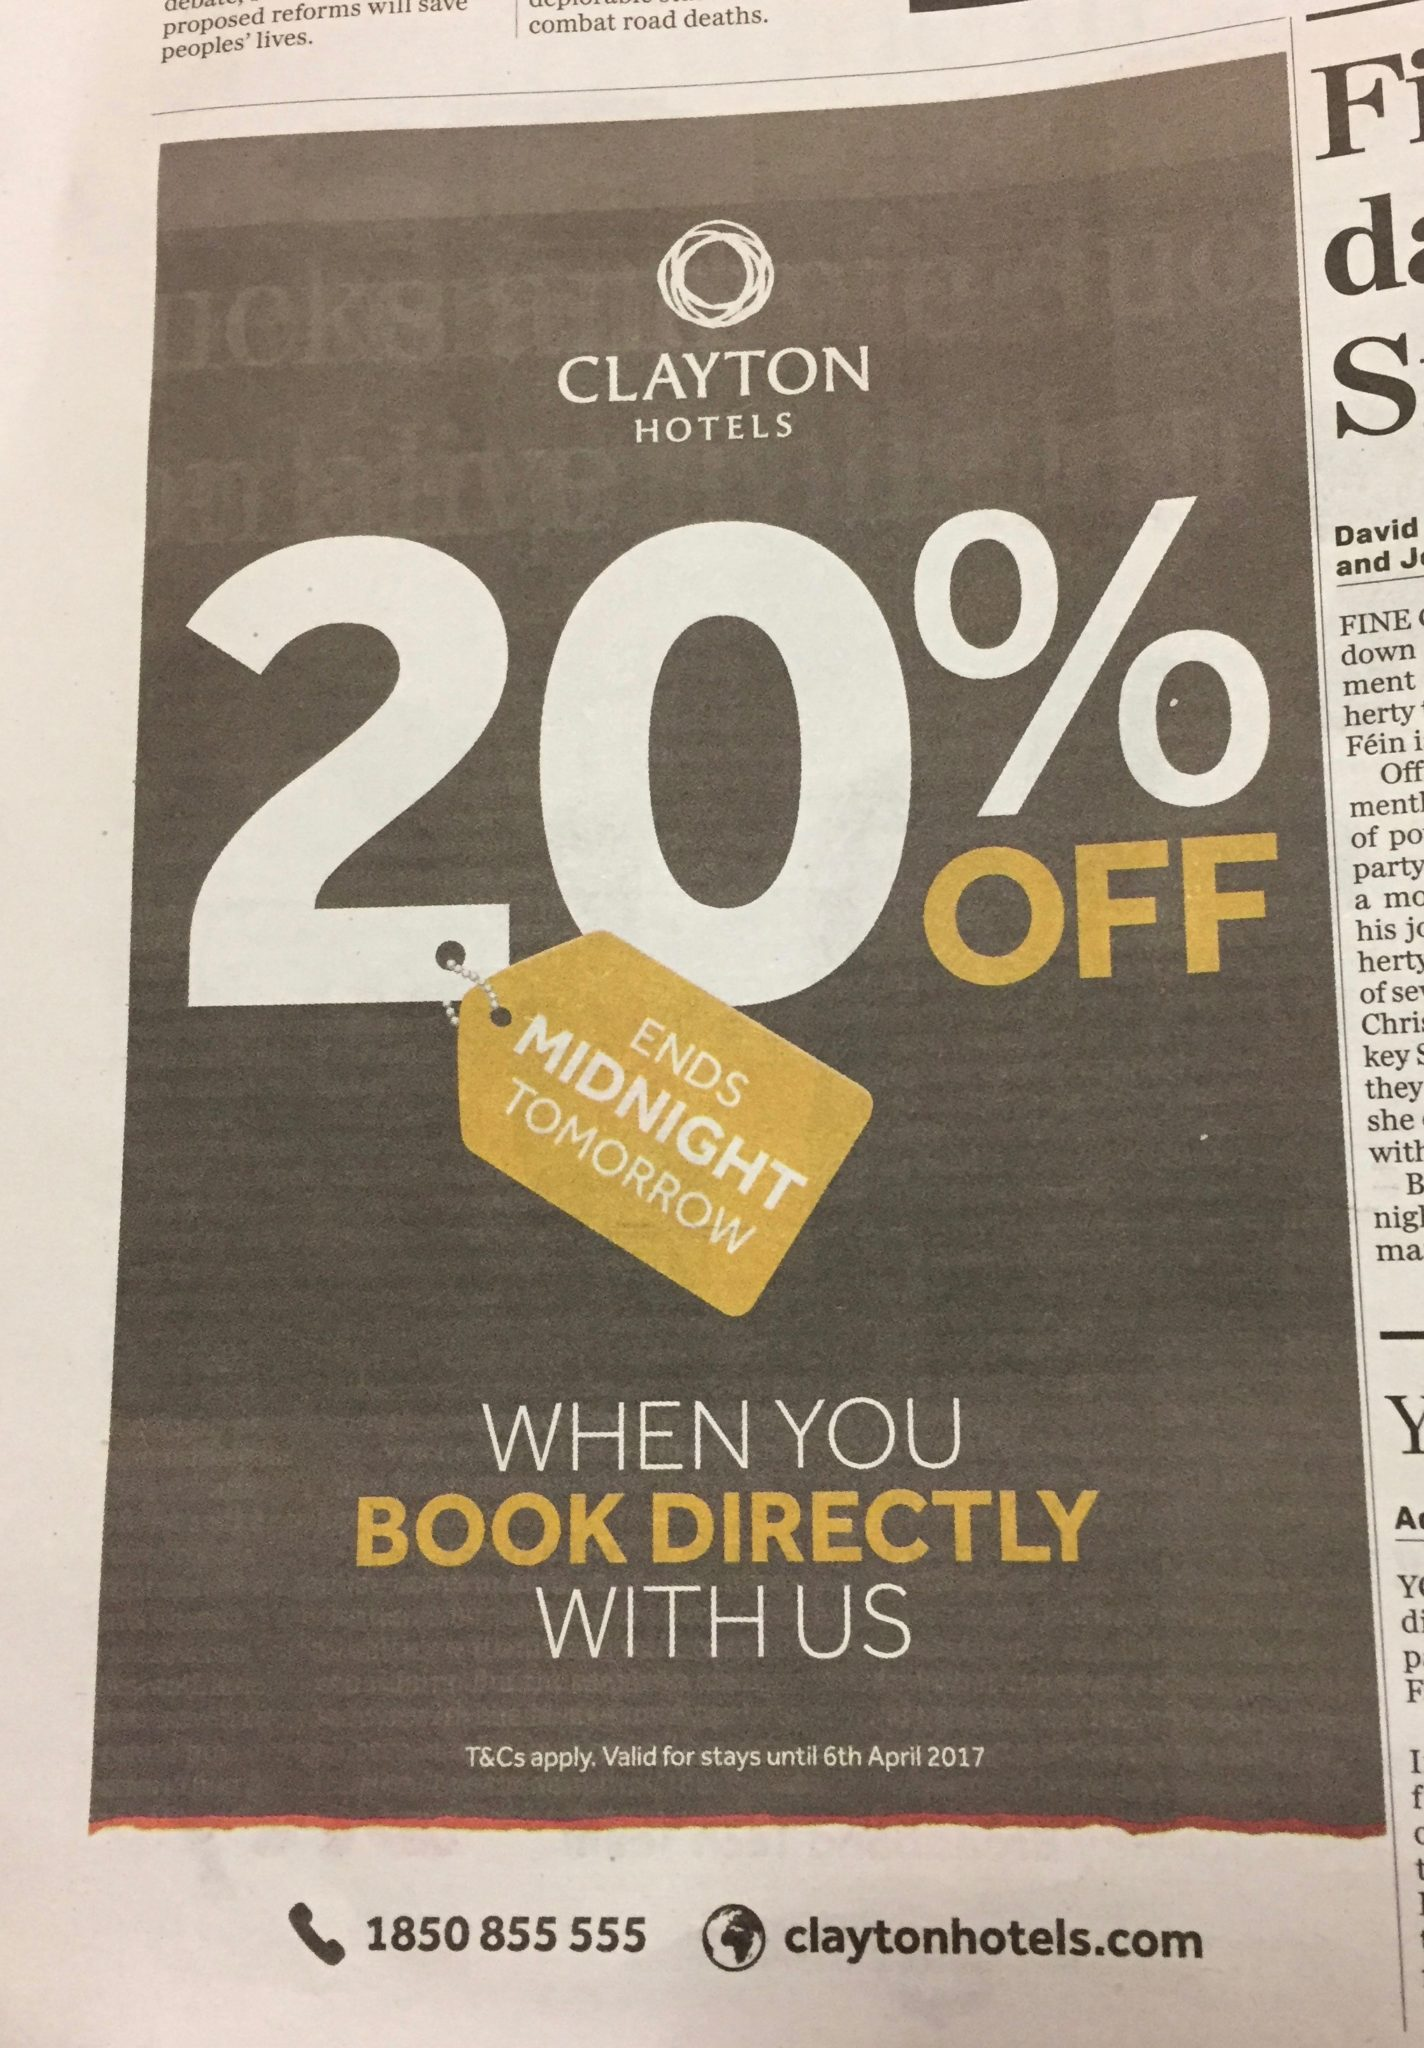 Clayton Hotels – 20% off when you book directly with us